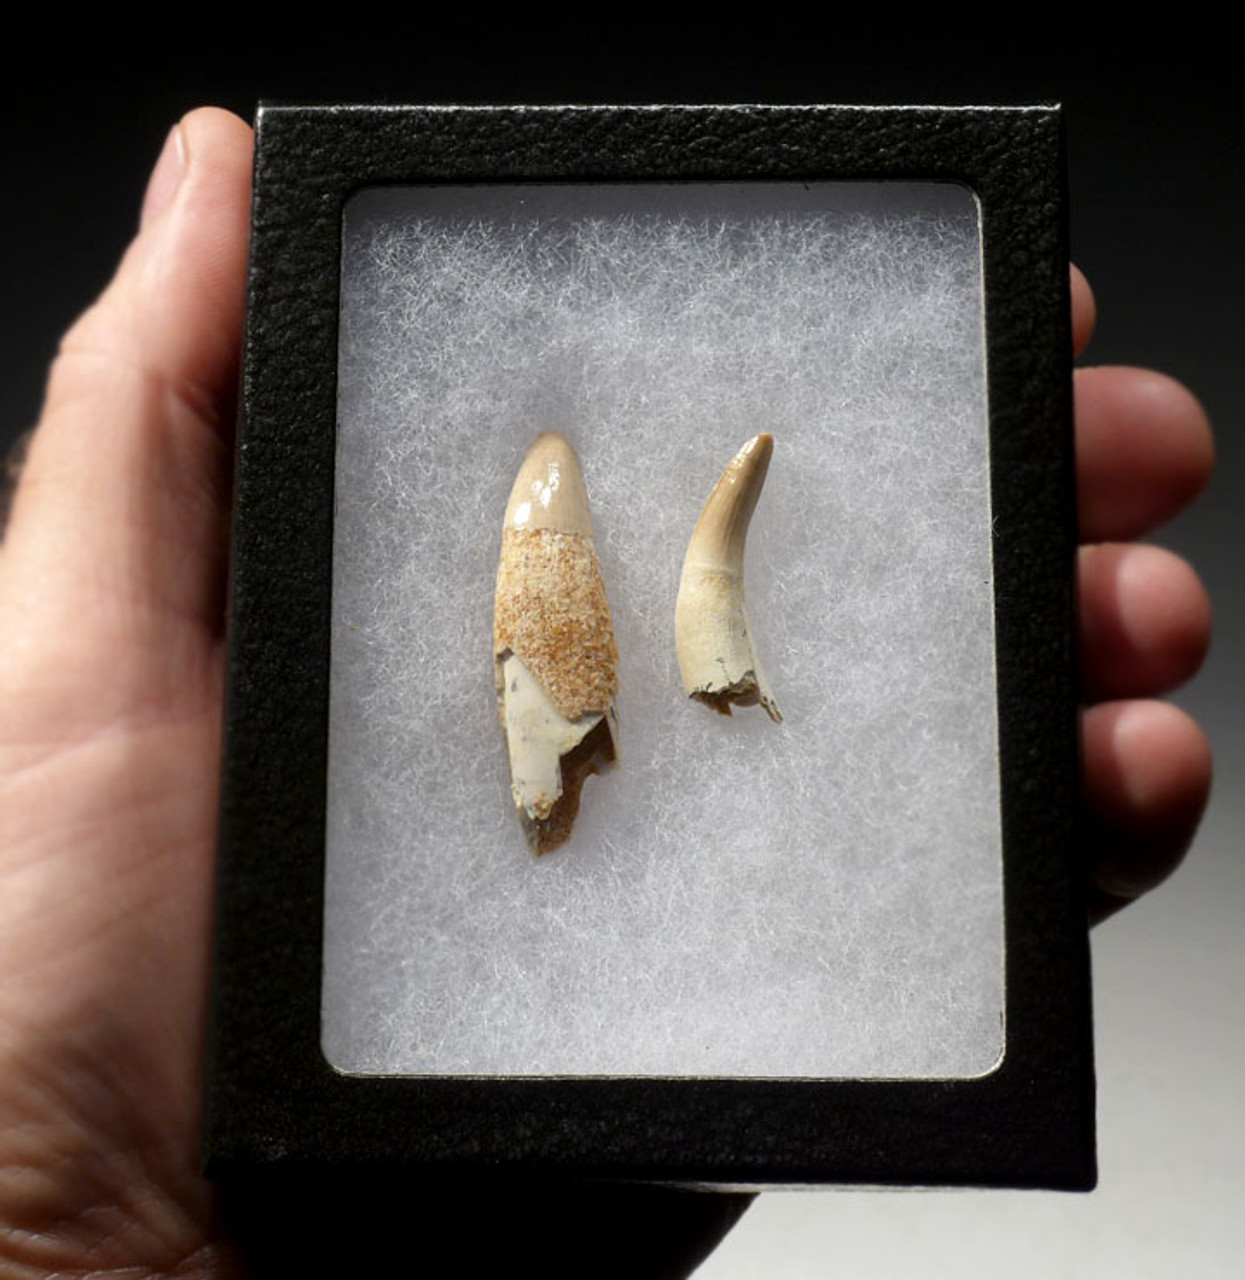 CROC023 - PAIR OF TEETH WITH PARTIAL ROOTS FROM A PREHISTORIC CROCODYLOMORPH DYROSAURUS